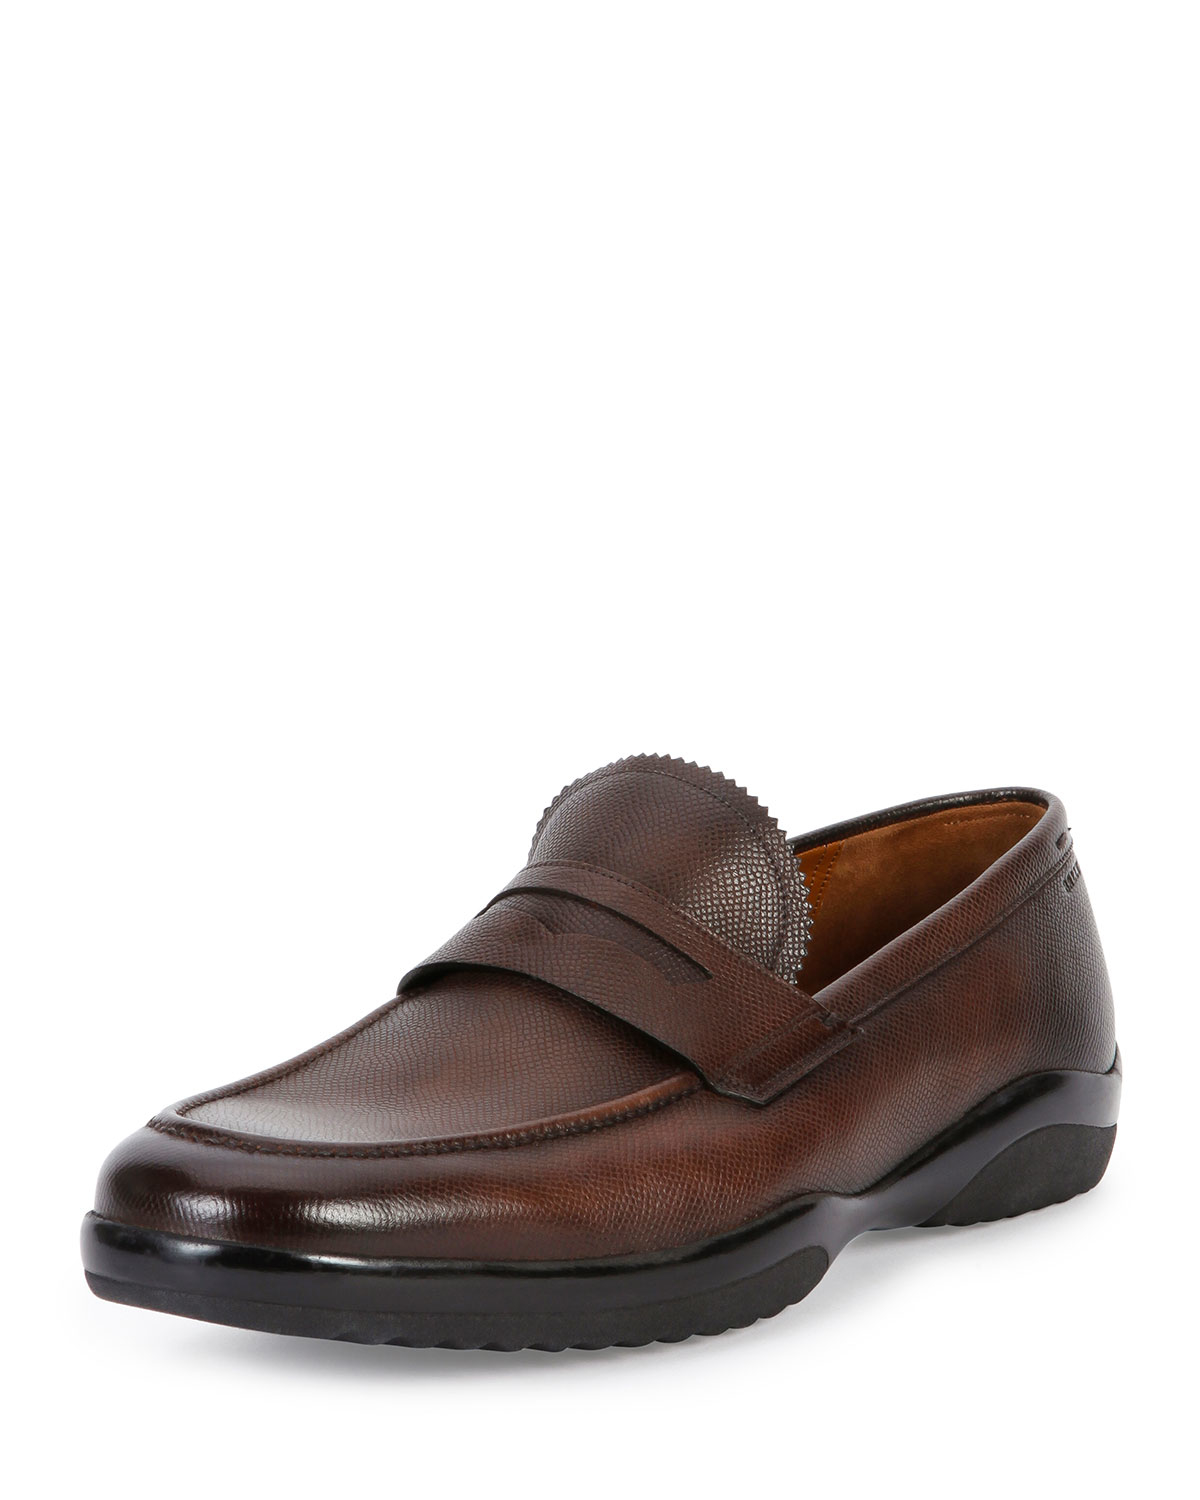 Lyst - Bally Micson Leather Penny Loafer in Brown for Men